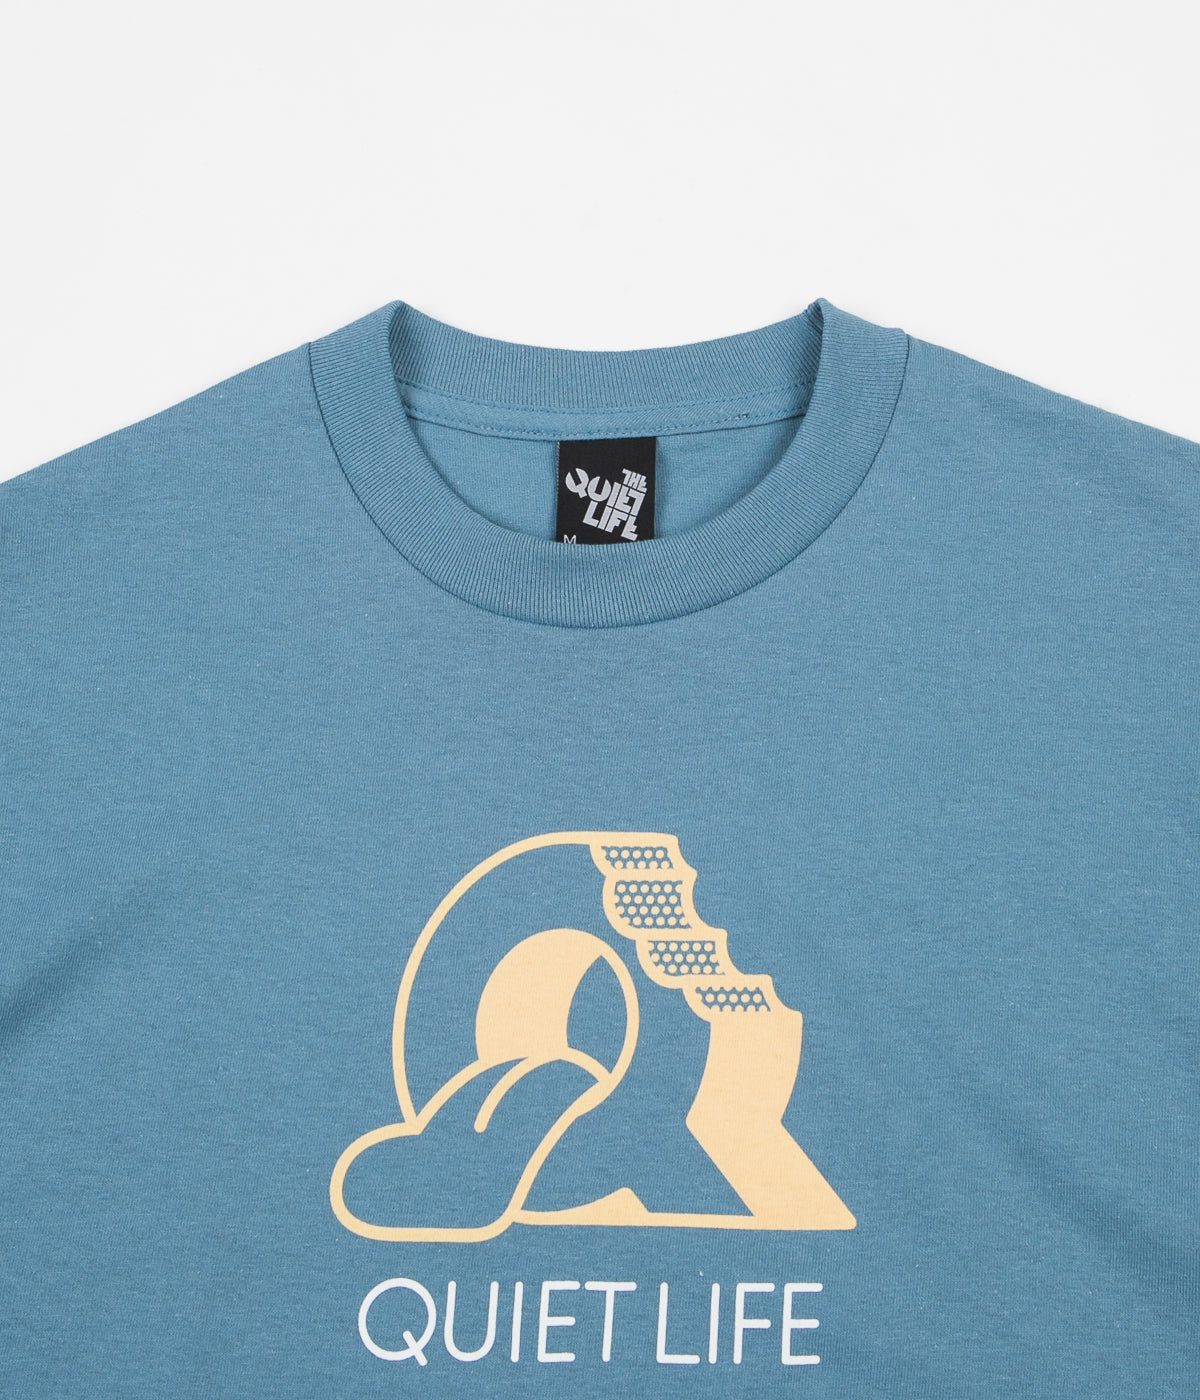 The Quiet Life Demo T-Shirt - Slate